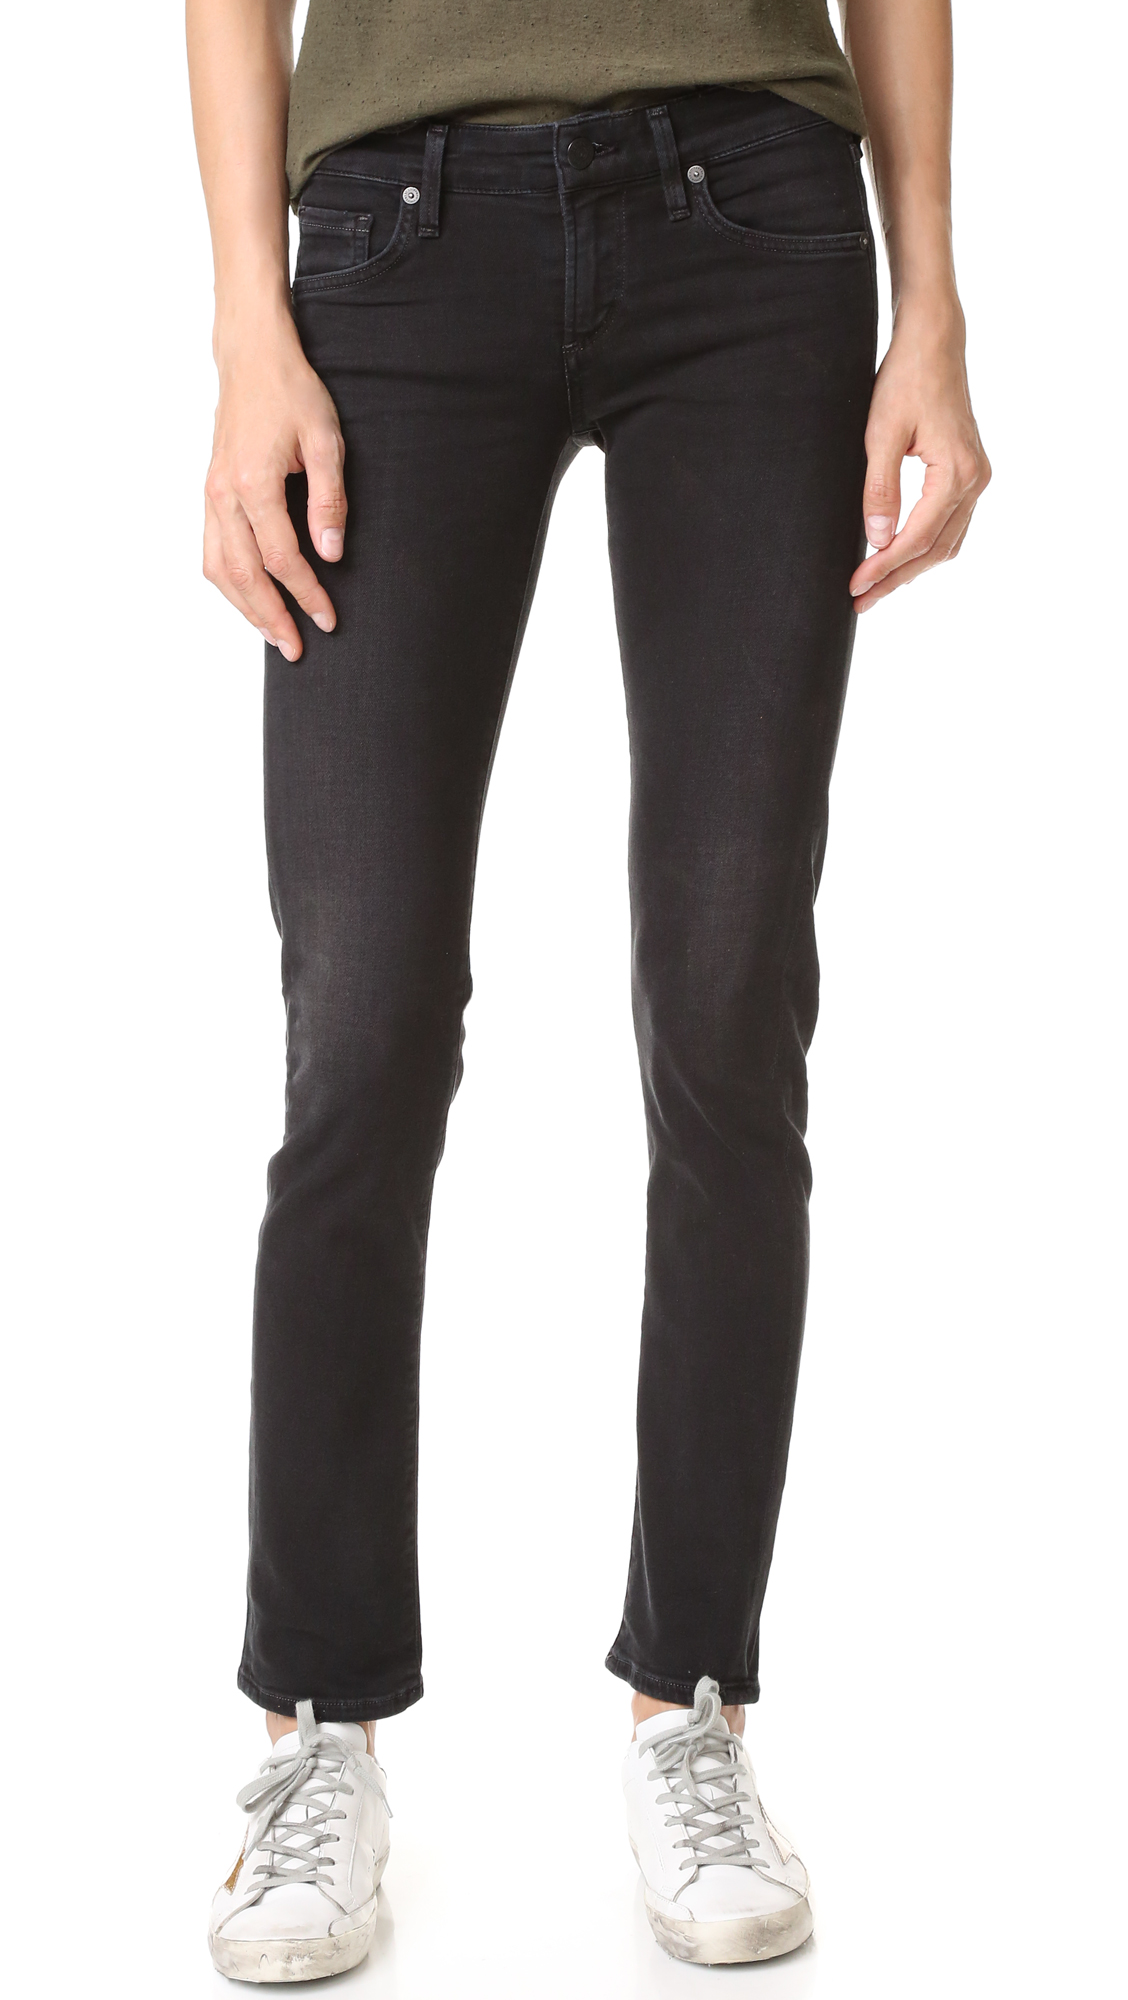 Citizens Of Humanity Racer Low Rise Skinny Jeans - Tempest at Shopbop